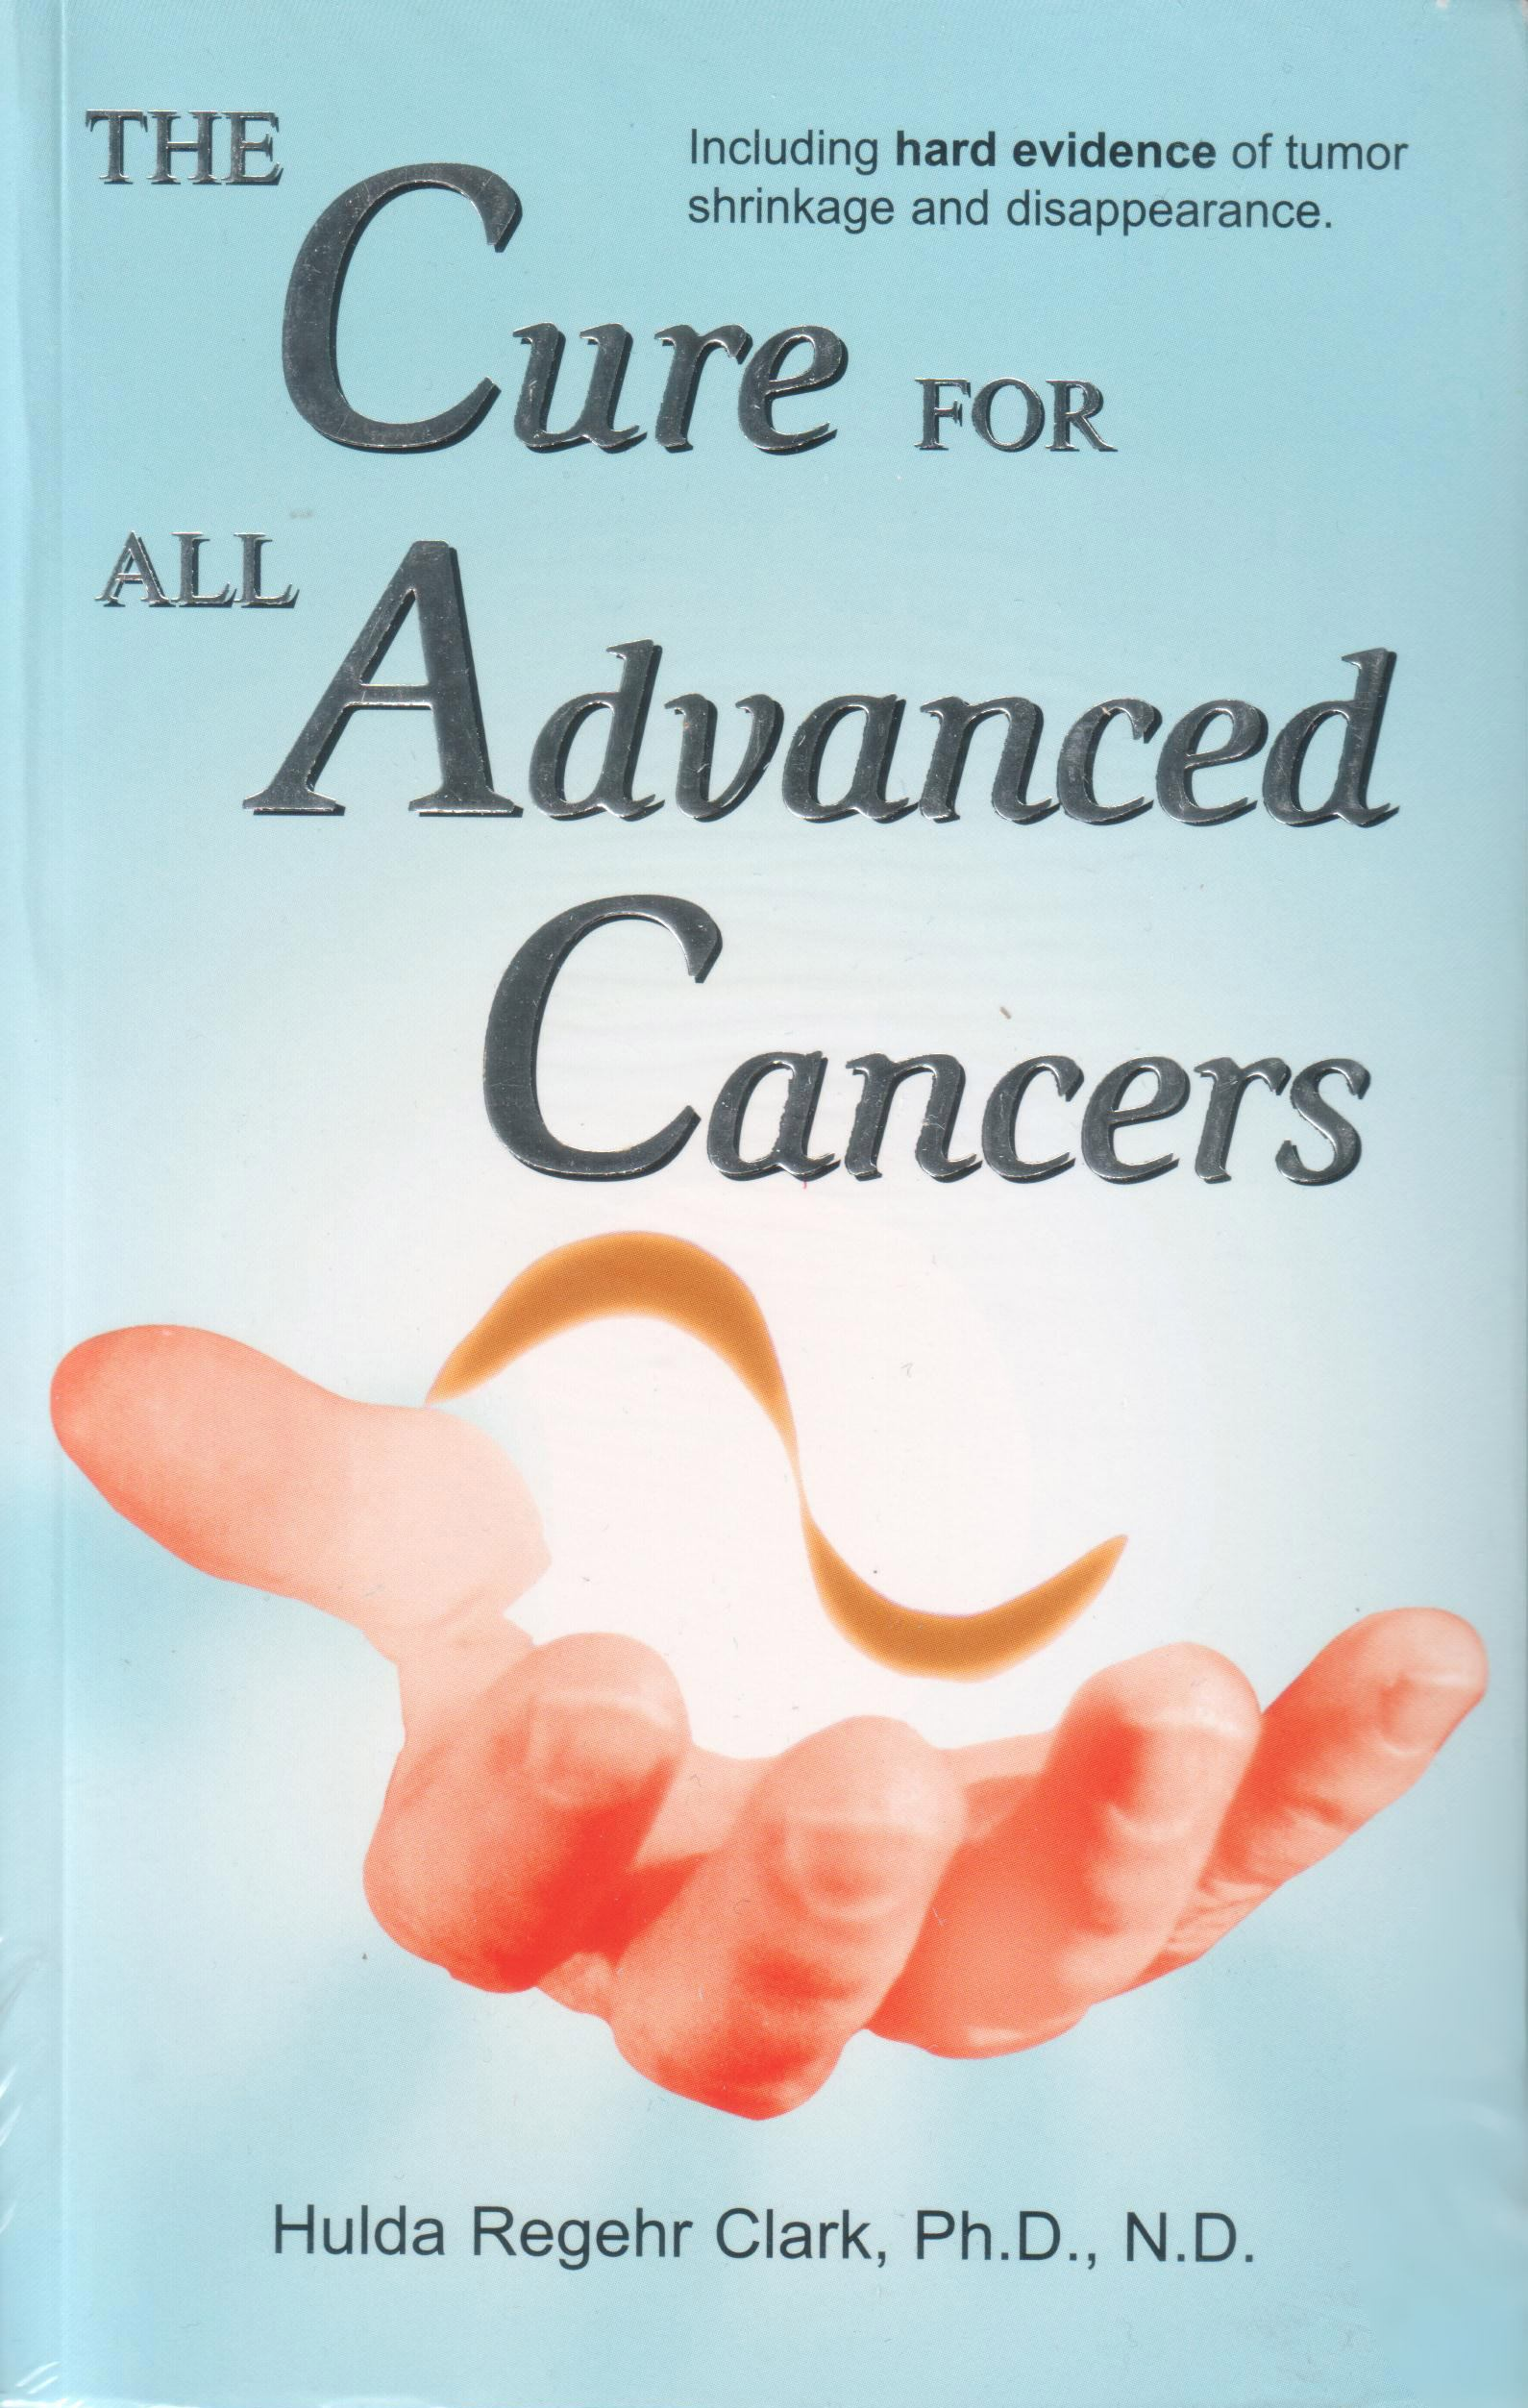 The Cure for all advances Cancers von Hulda Clark auf englisch